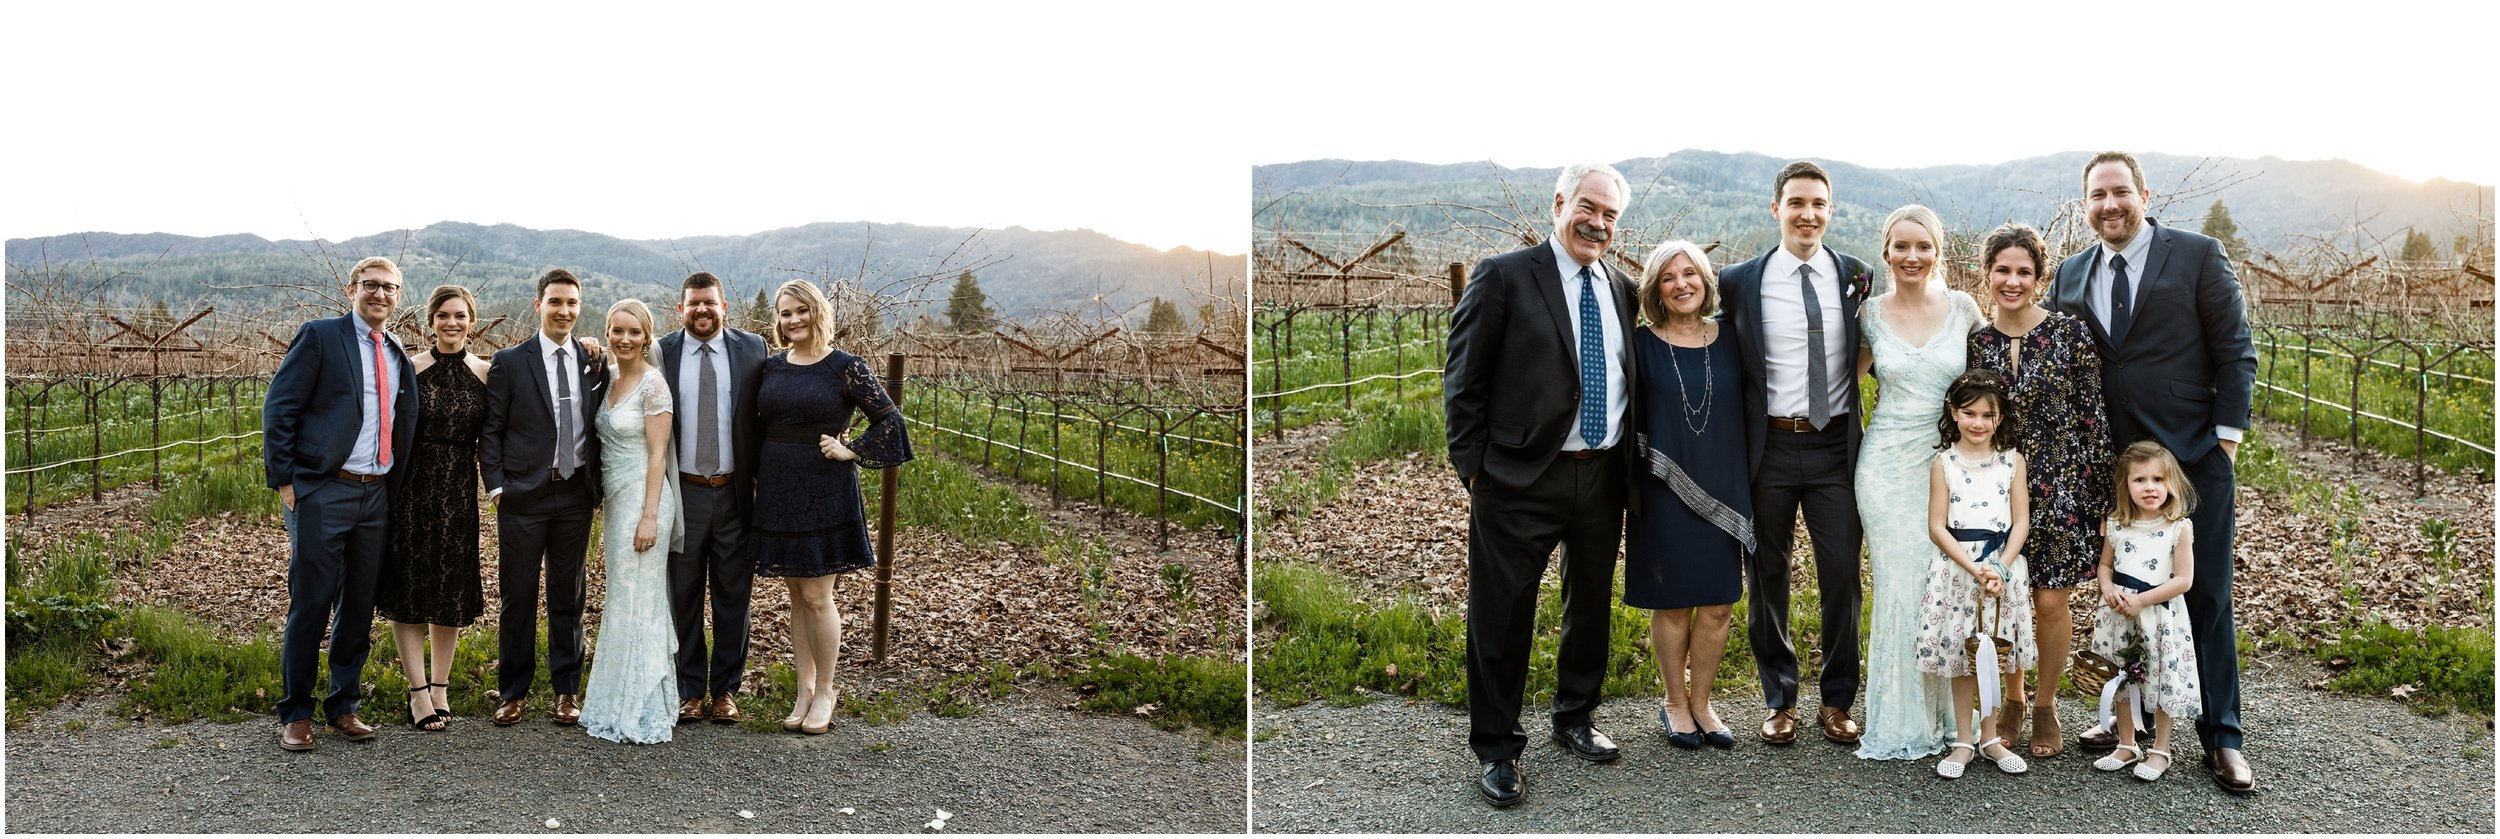 family posing at the Harvest Inn with vineyard and mountains in the background